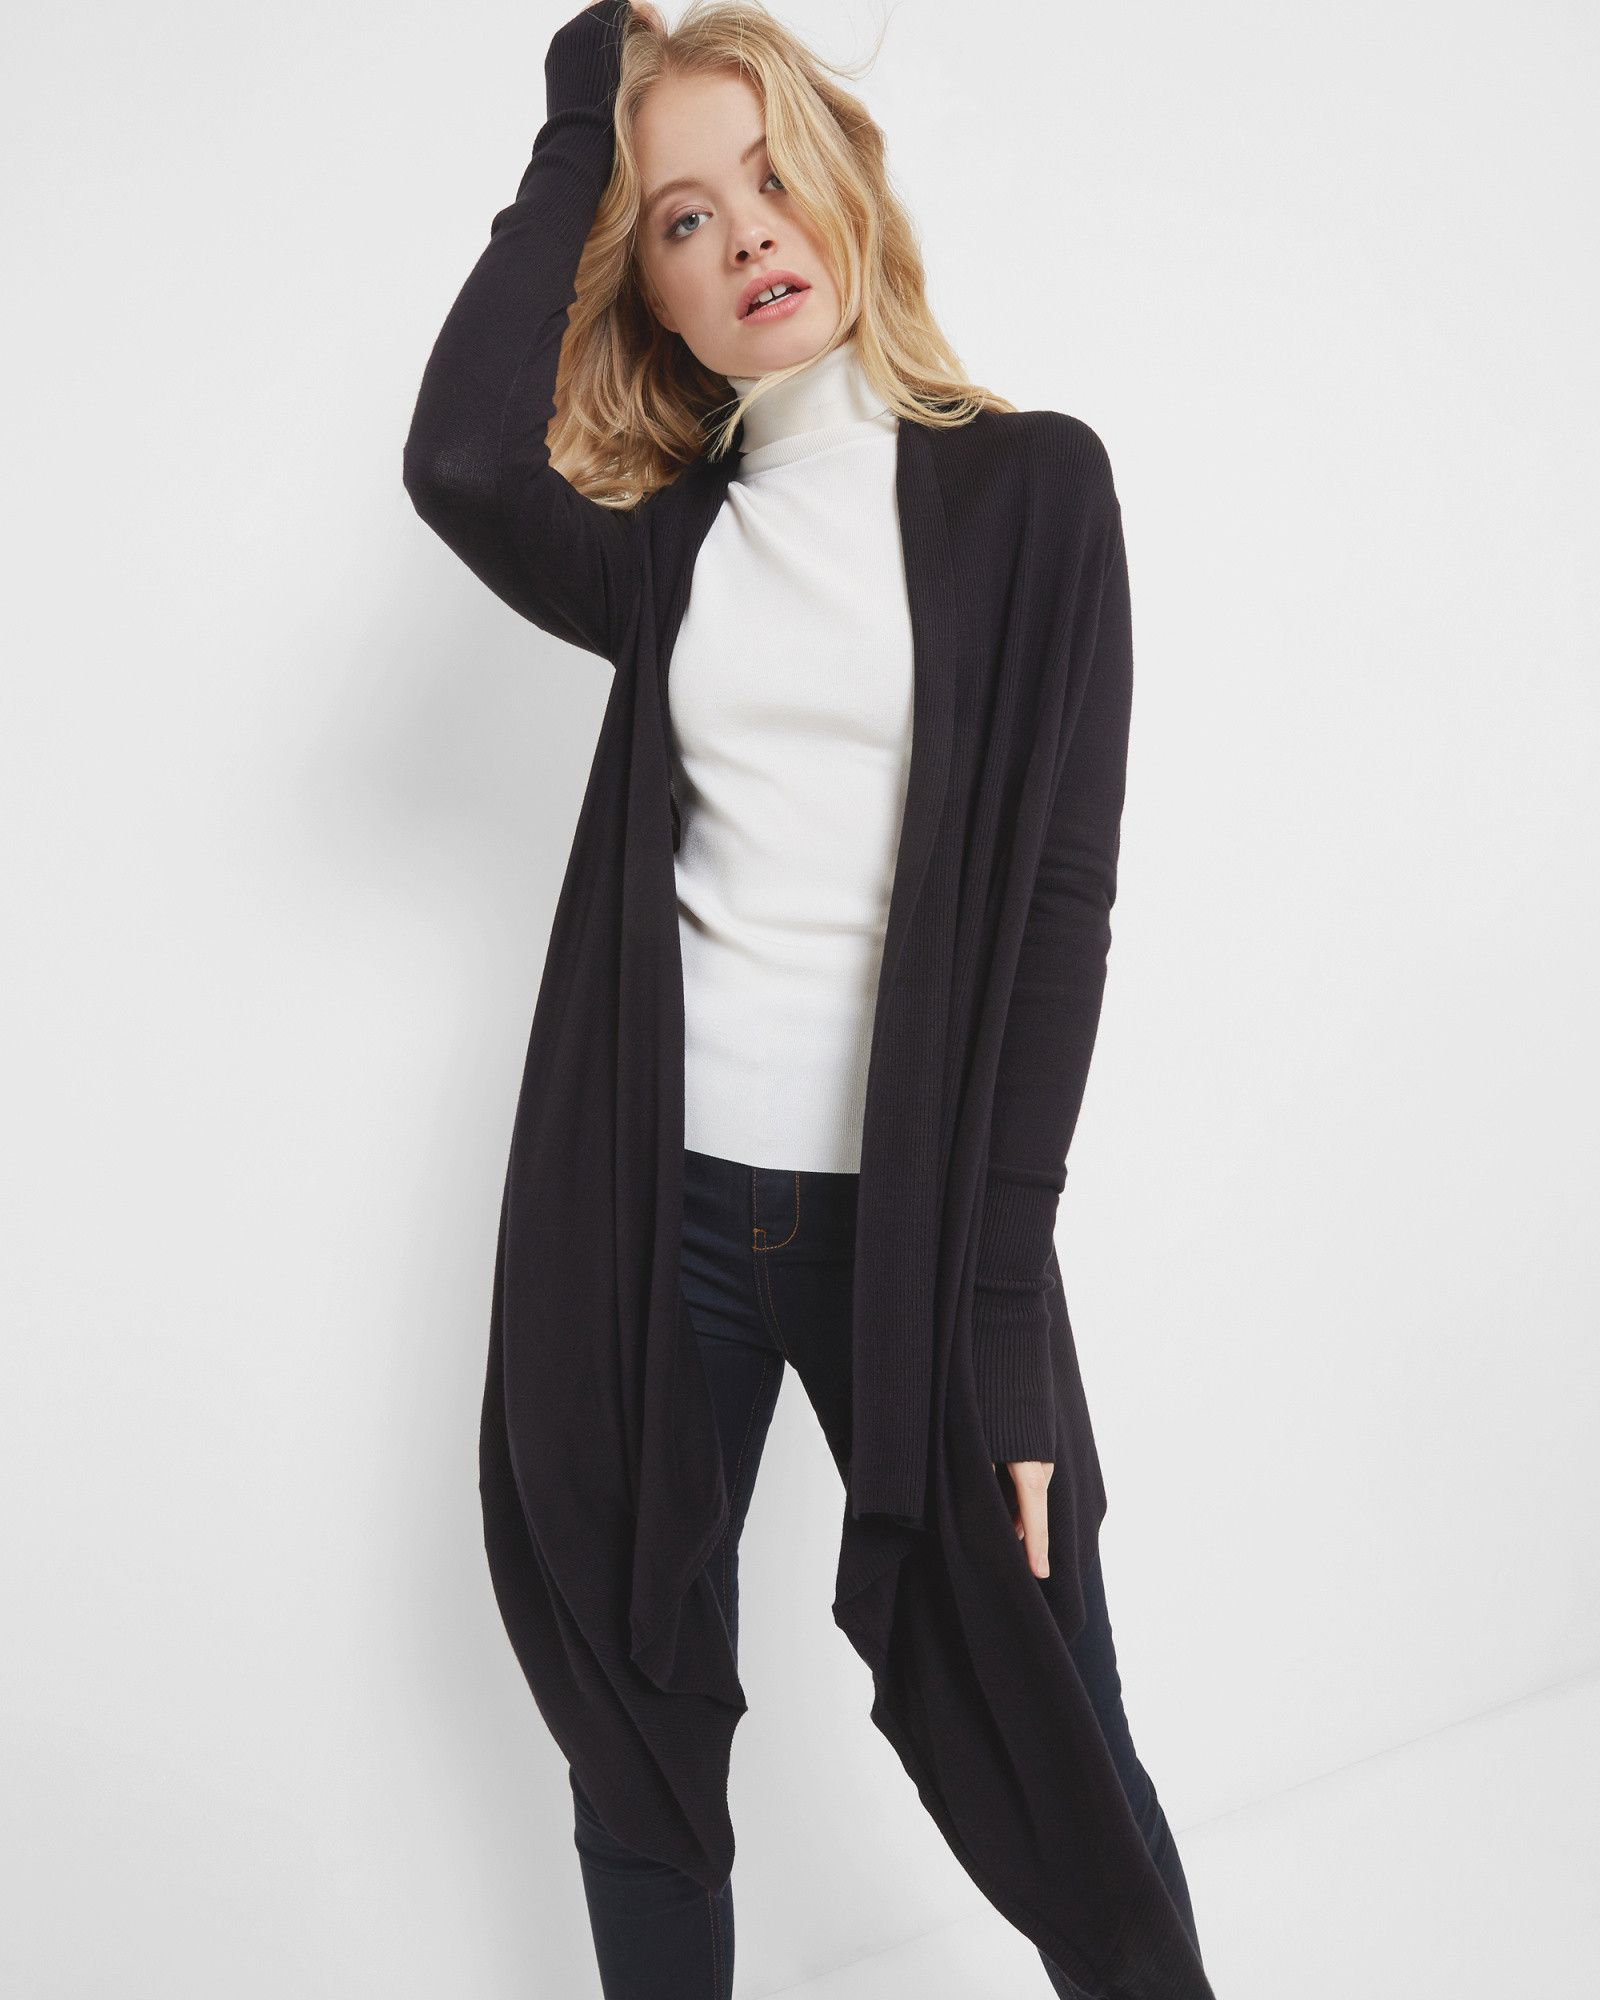 Fine knit waterfall cardigan - Black | Knitwear | Ted Baker UK ...